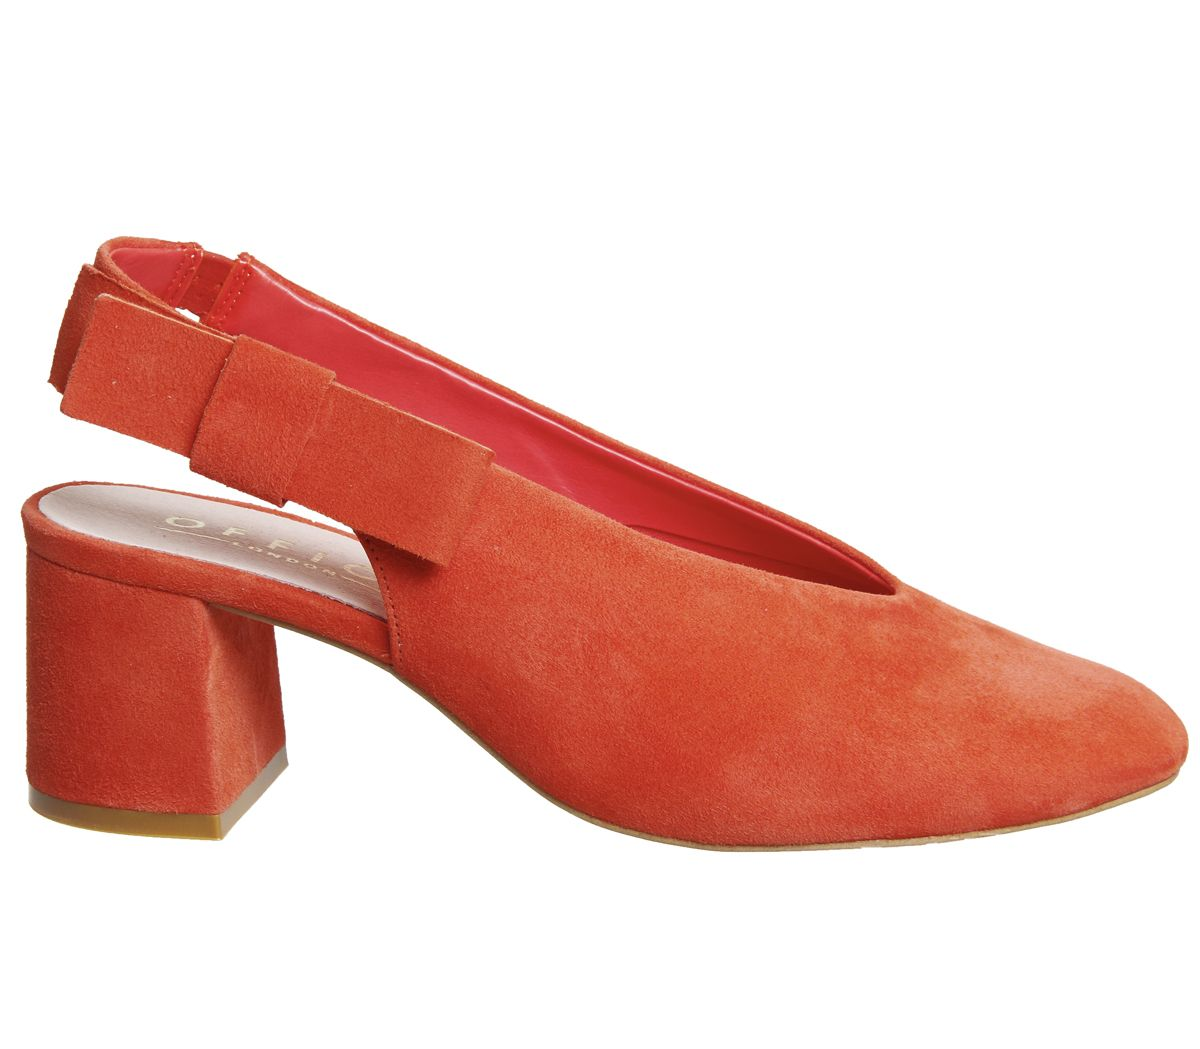 Womens-Office-Magical-Bow-Slingback-Heels-Red-Suede-Heels thumbnail 6